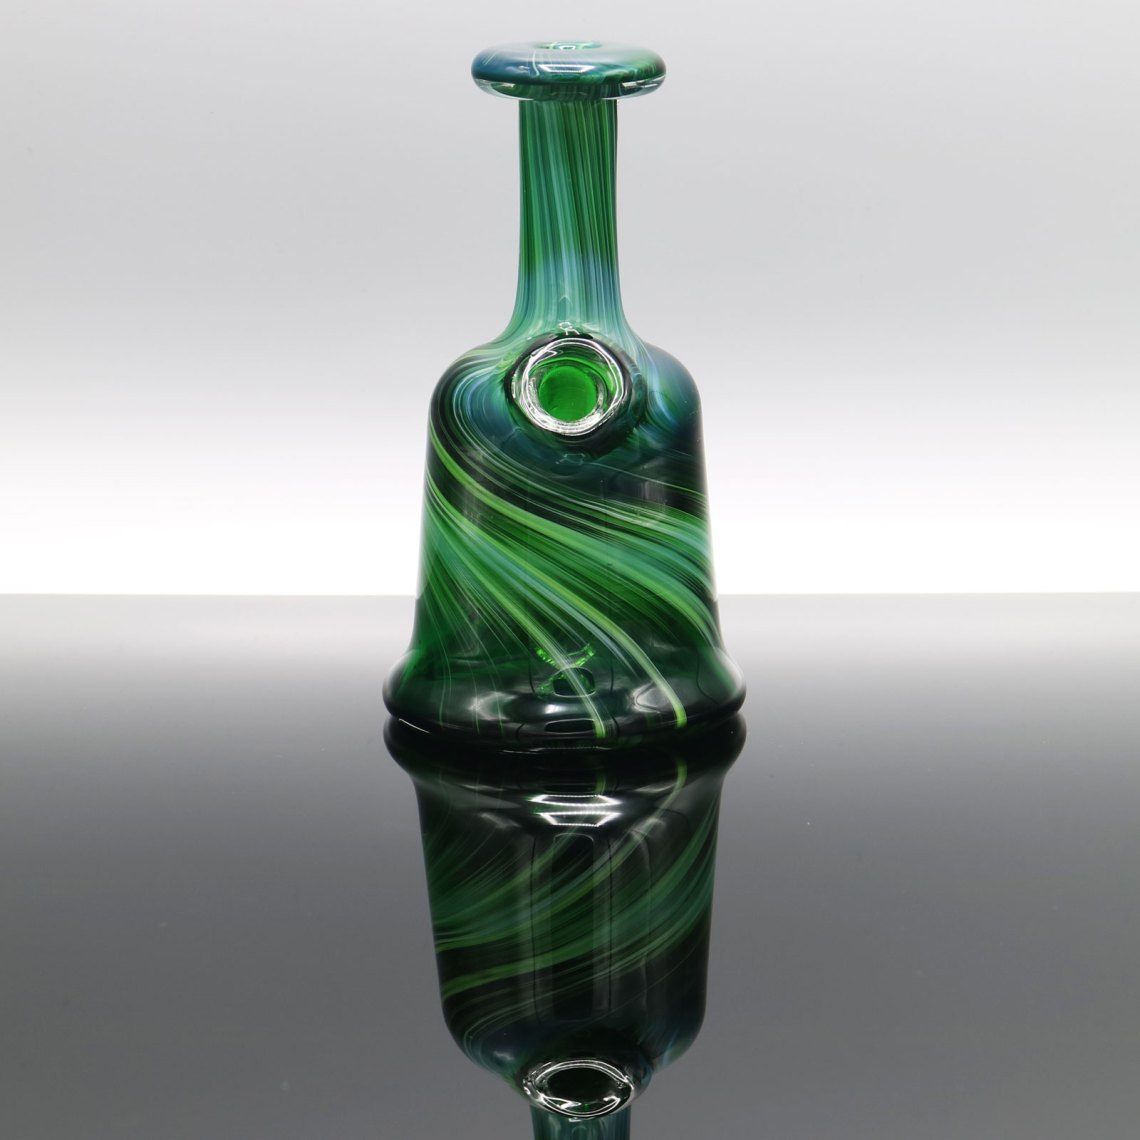 Glassmith – Experimental Green Pocket Bottle 2